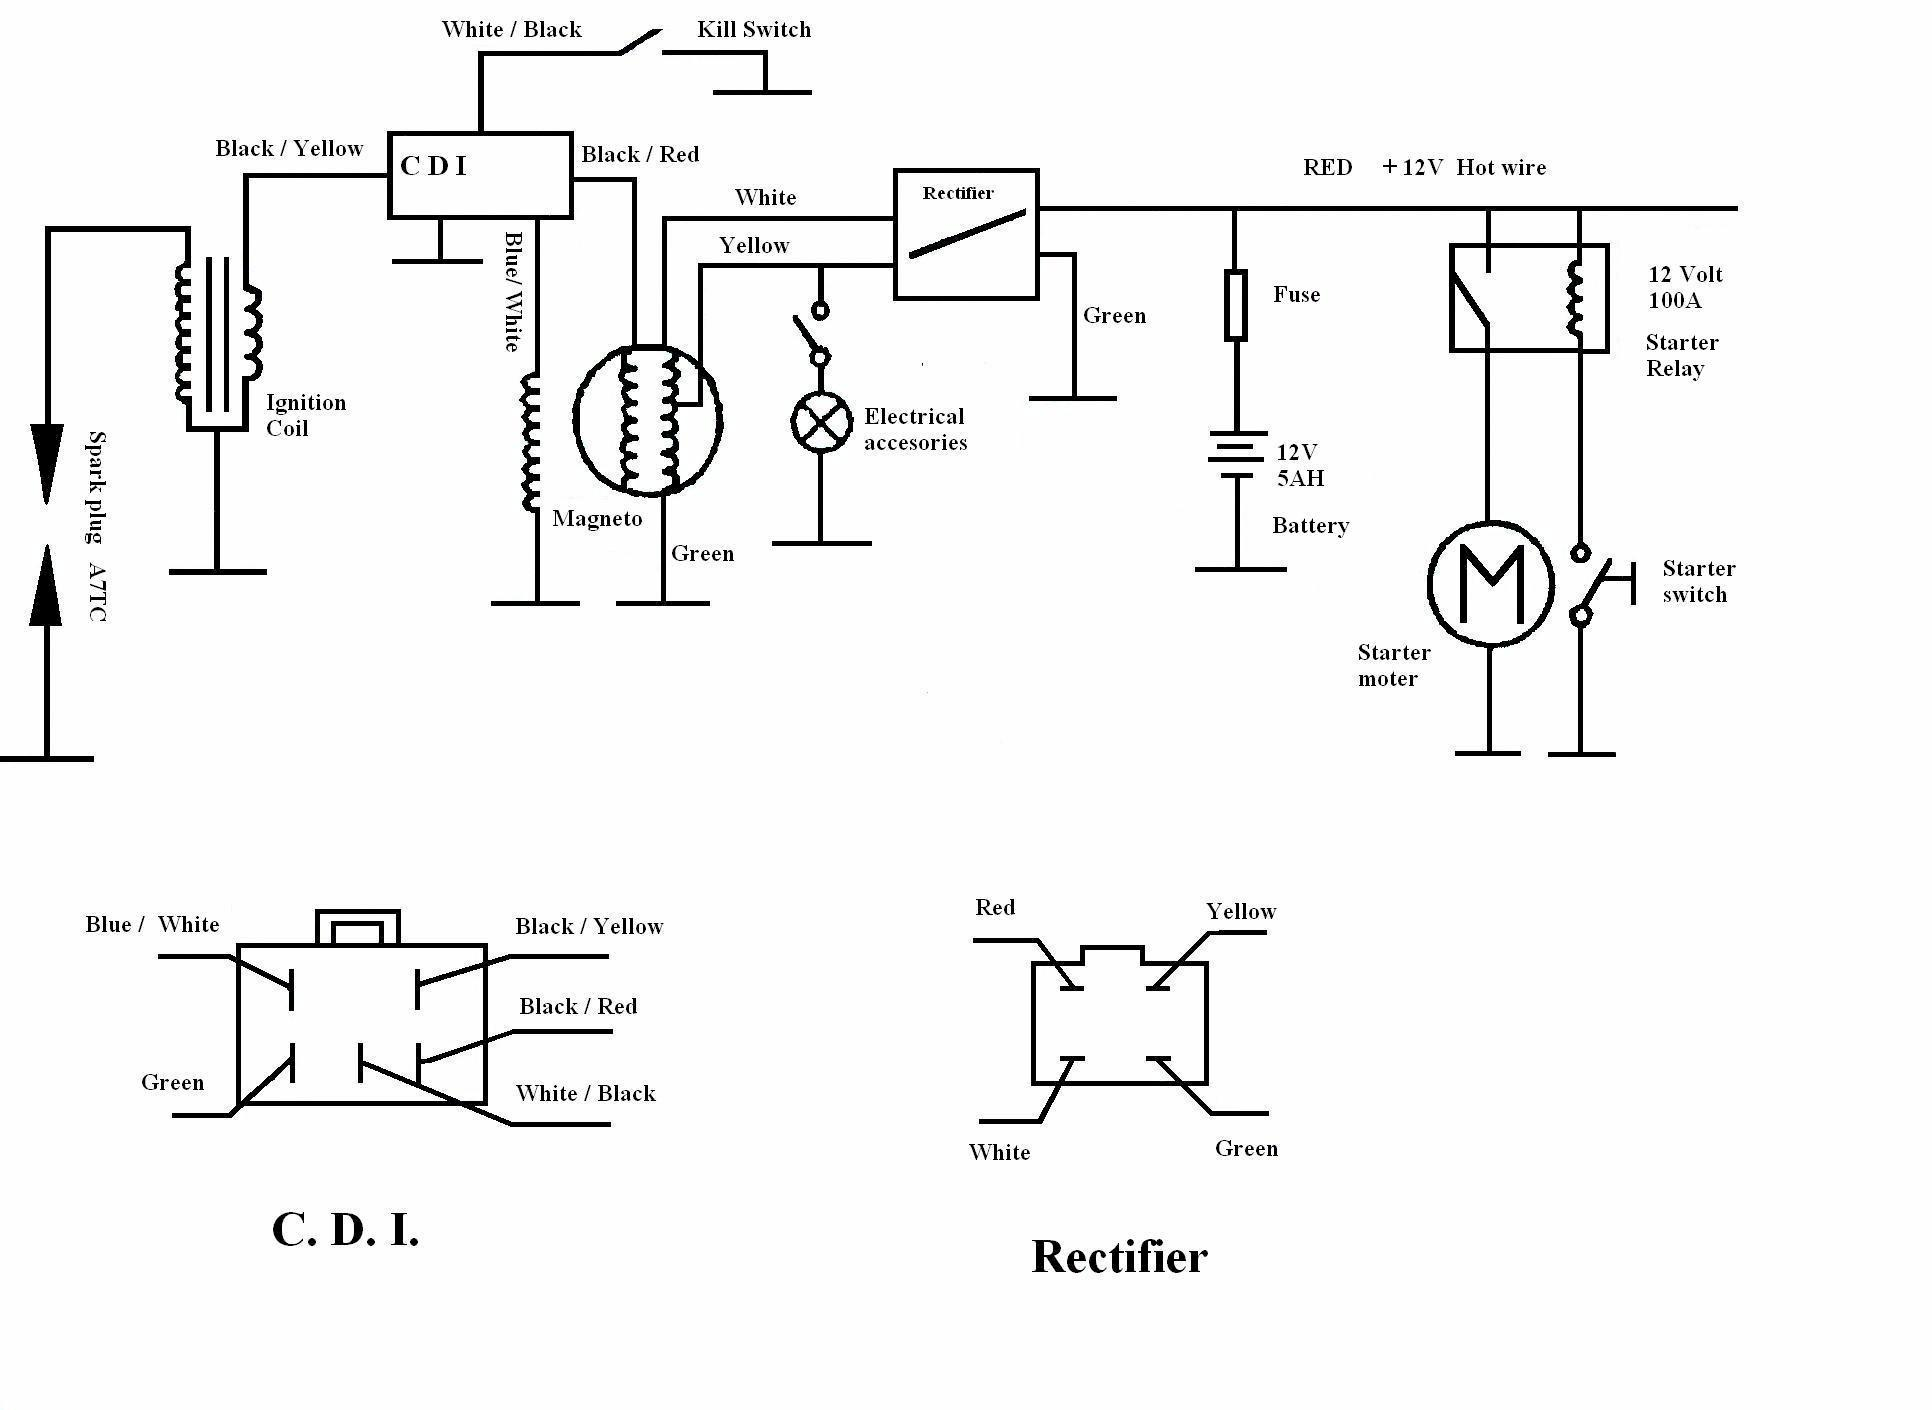 Cdi General Types on honda motorcycle wiring schematics